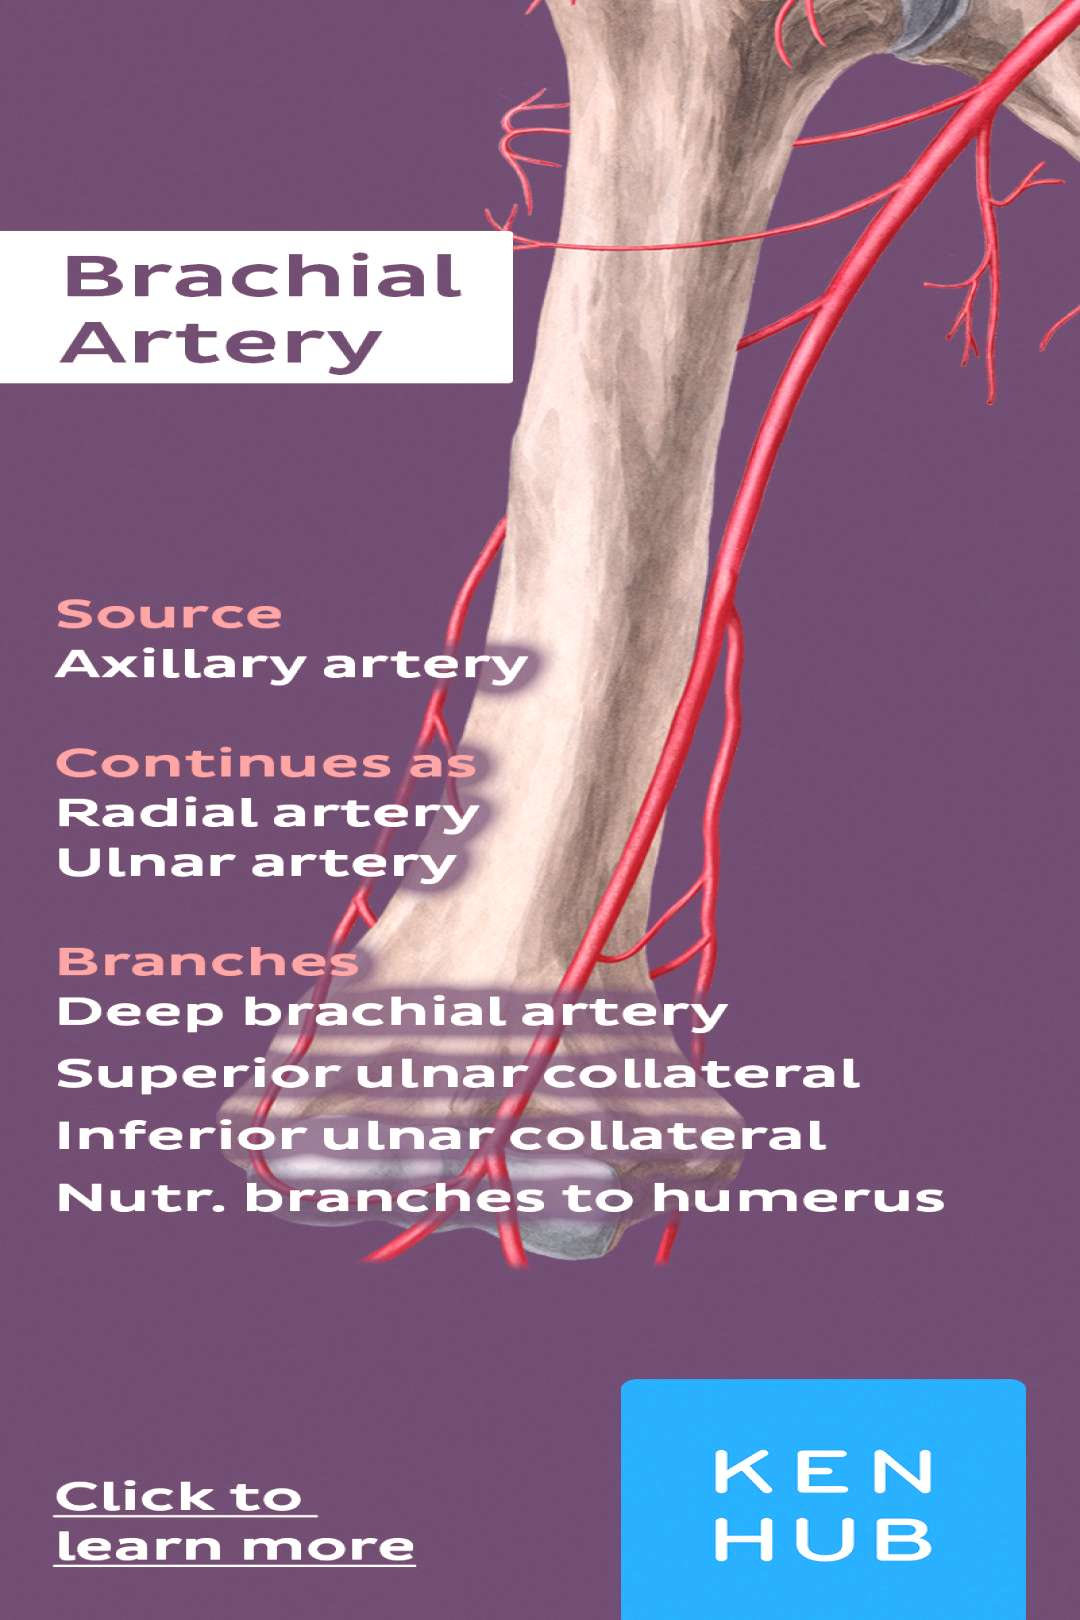 about the of the brachial artery. Pin it! )